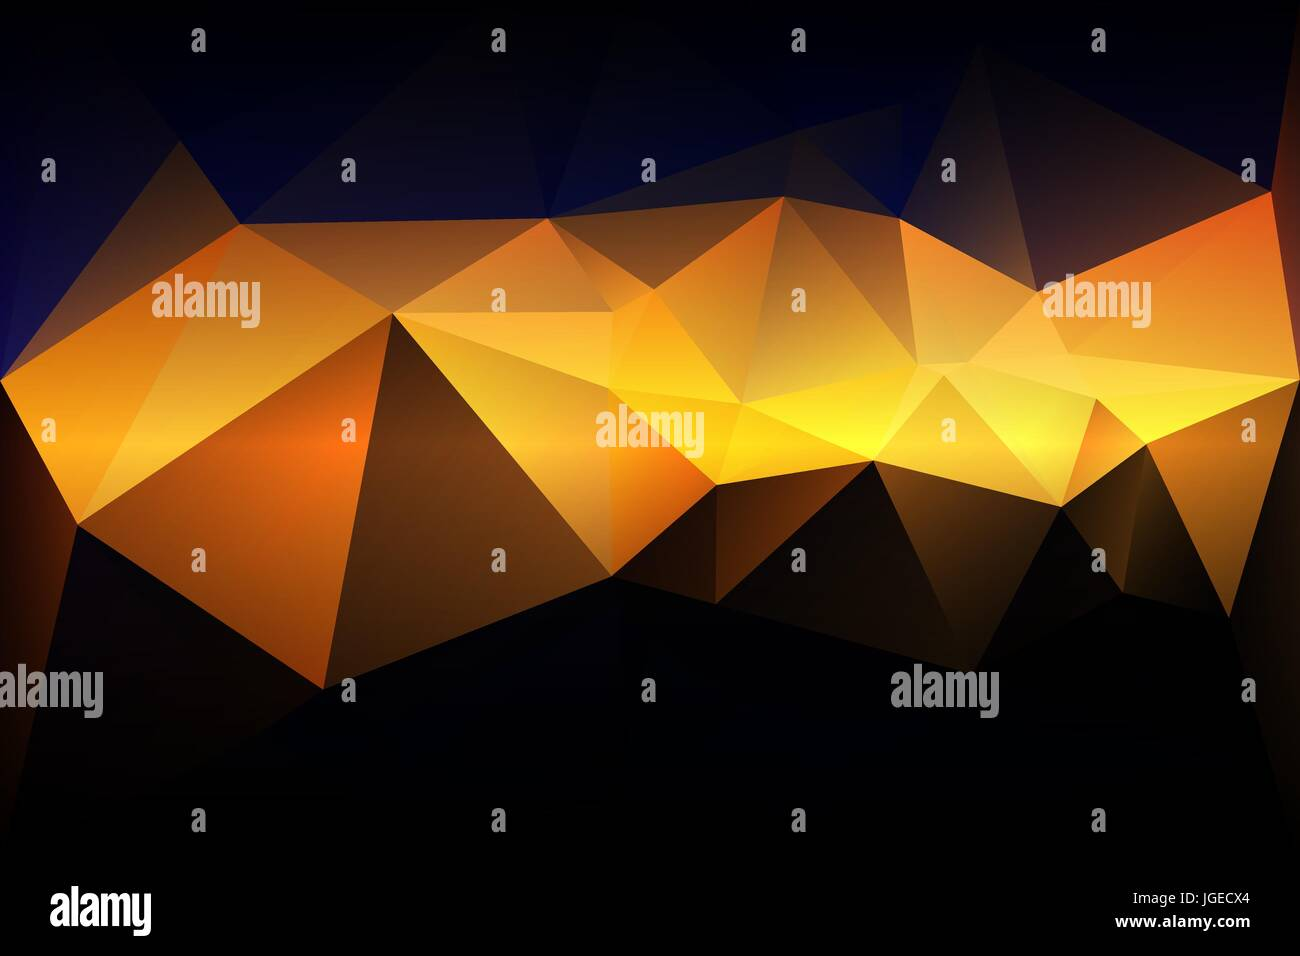 Blue Yellow Orange Black Abstract Low Poly Geometric